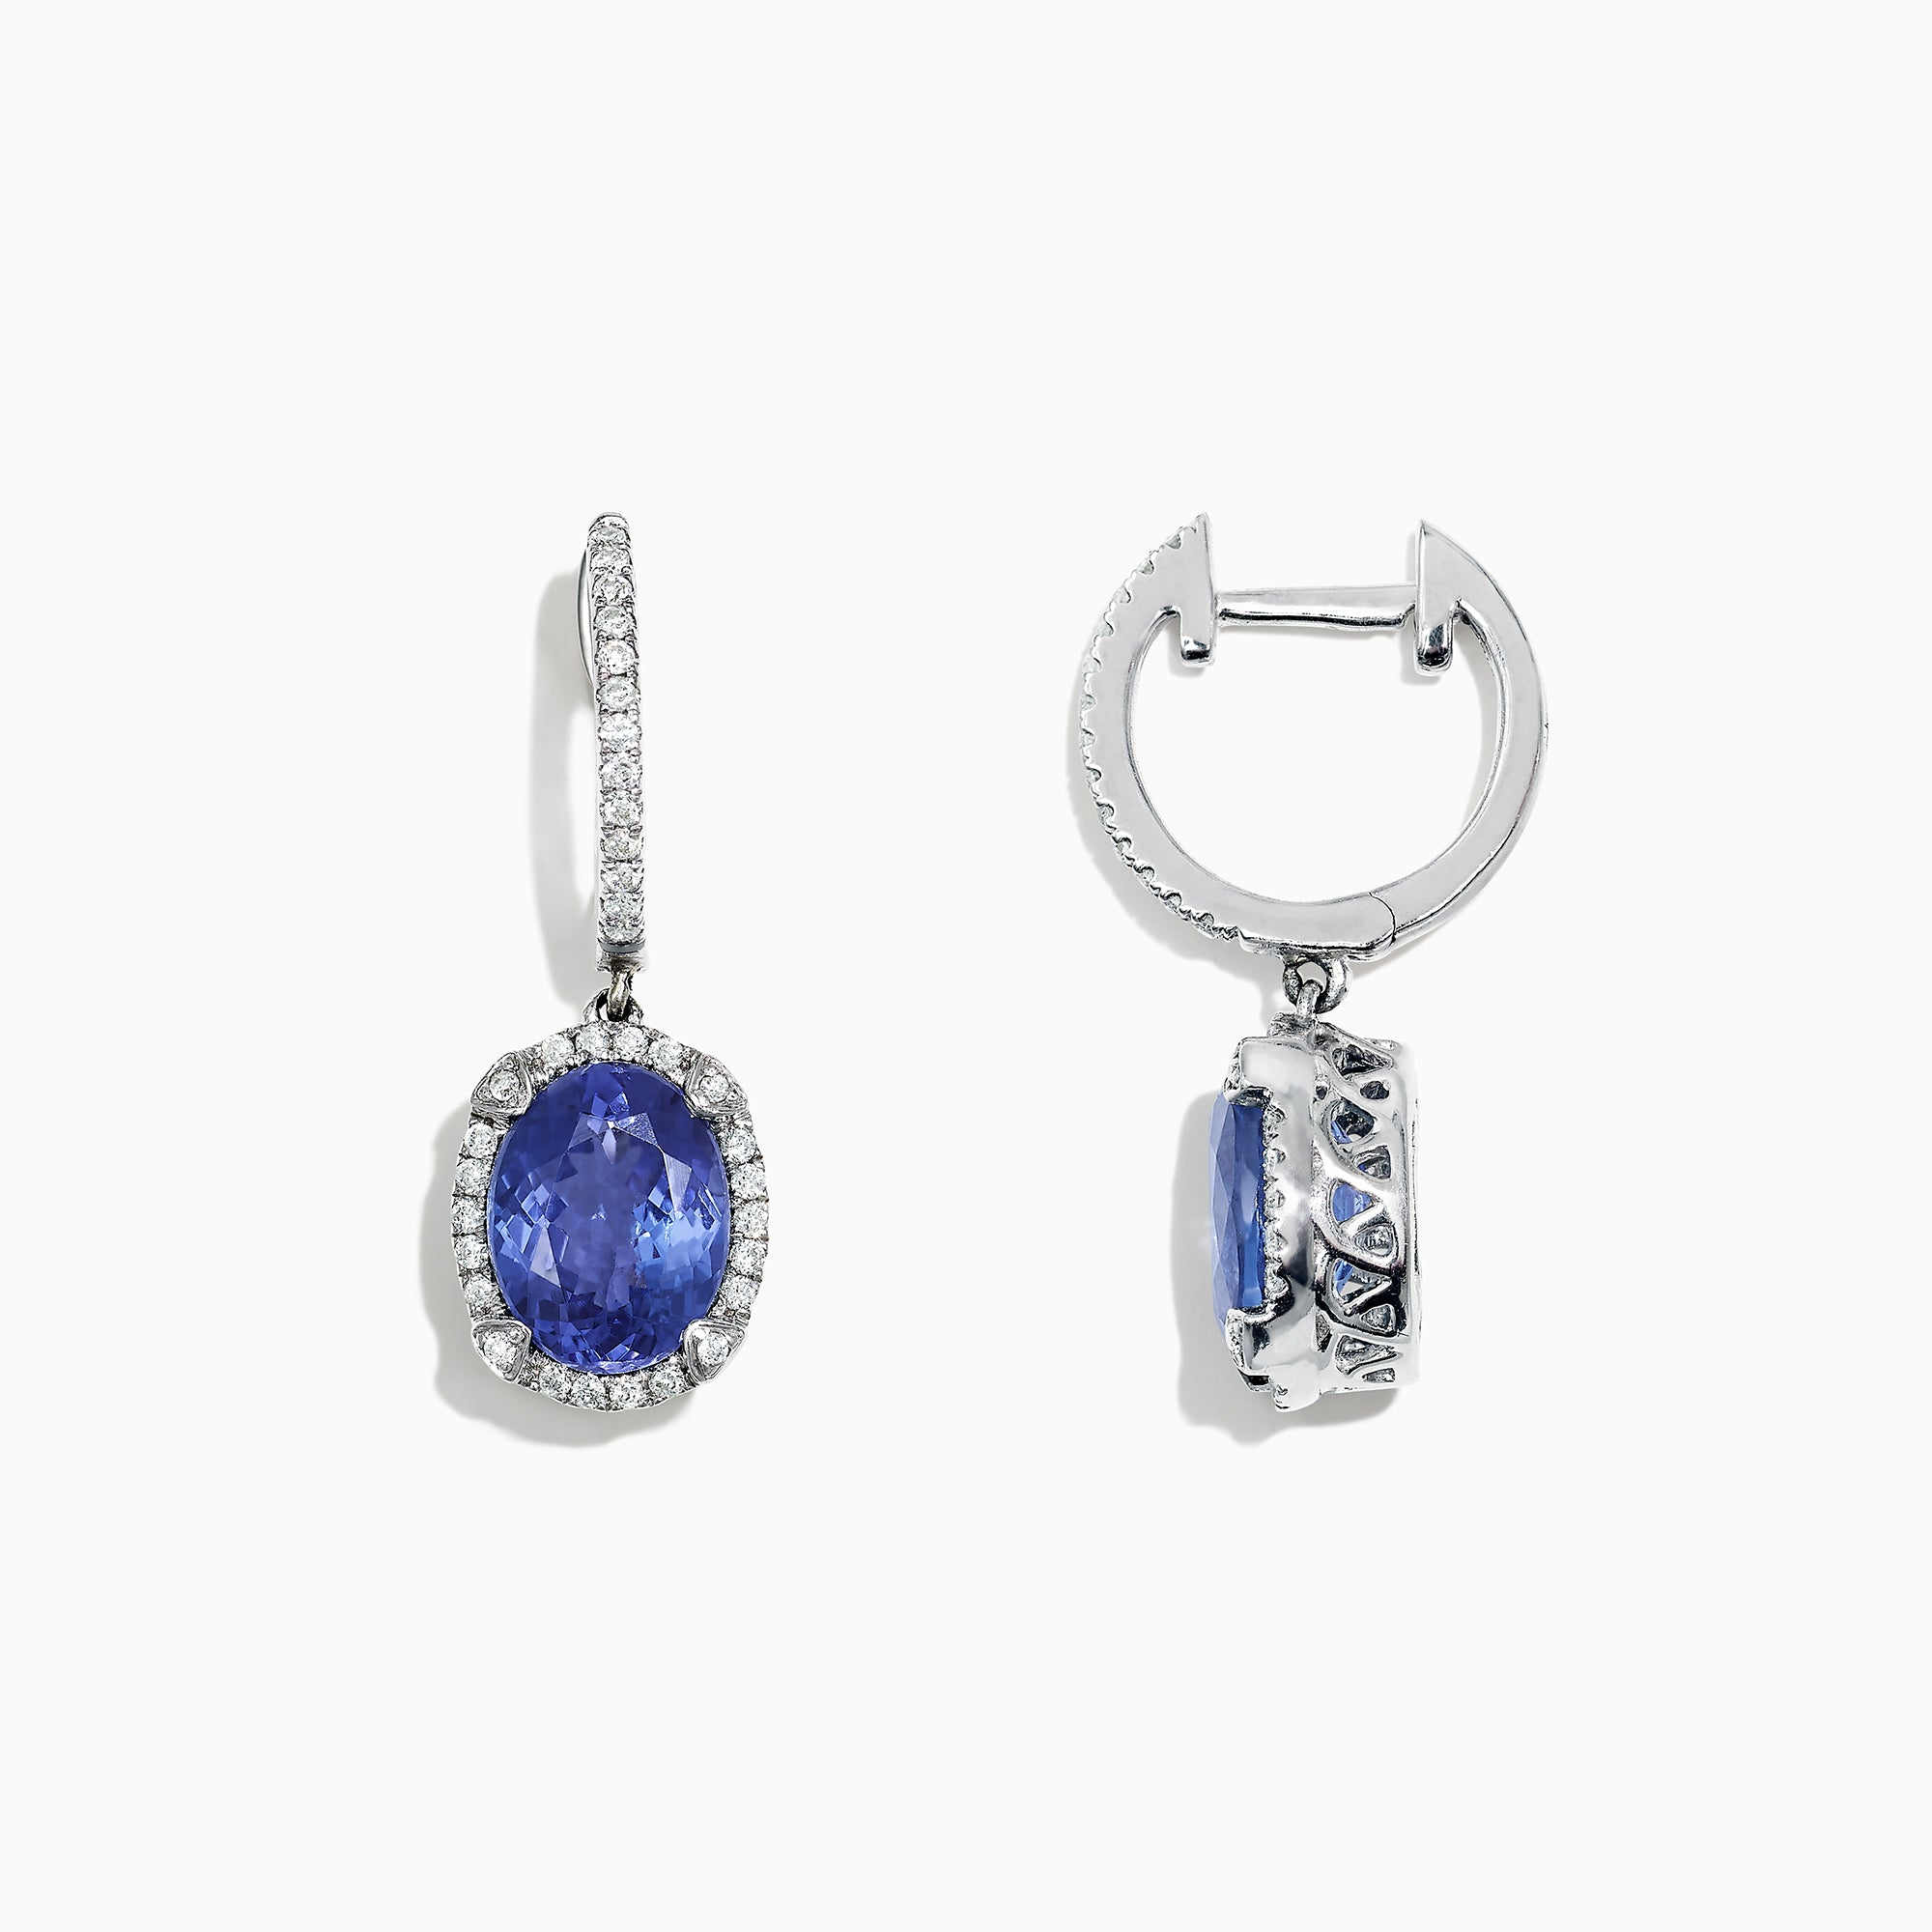 Effy Gemma 14K White Gold Tanzanite and Diamond Earrings, 4.14 TCW